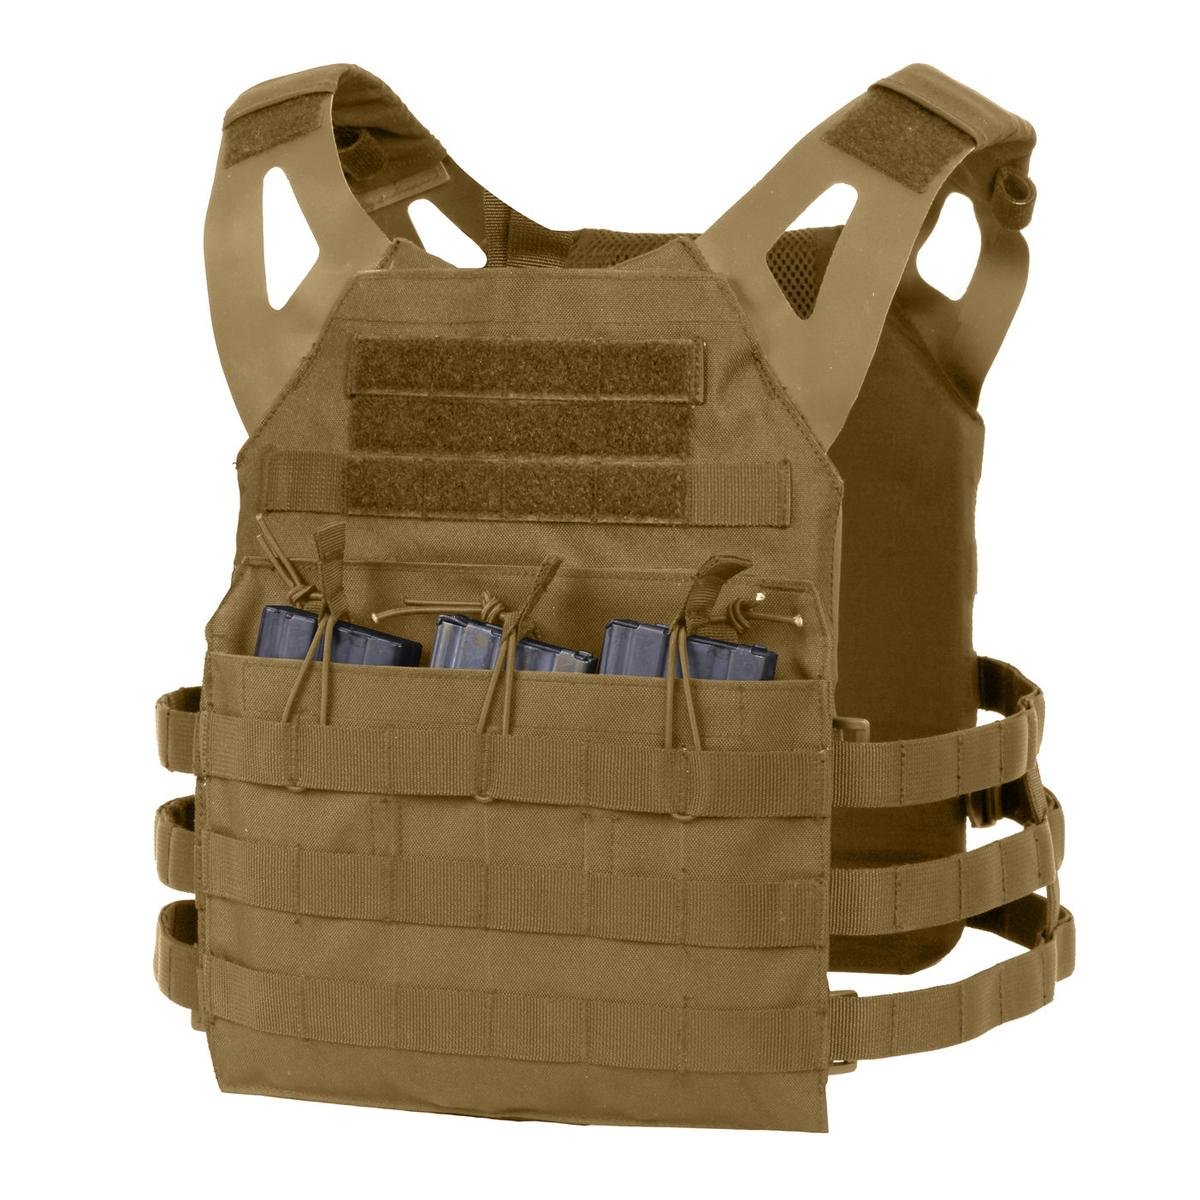 Rothco Lightweight MOLLE Tactical Armor Plate Carrier Vest ...